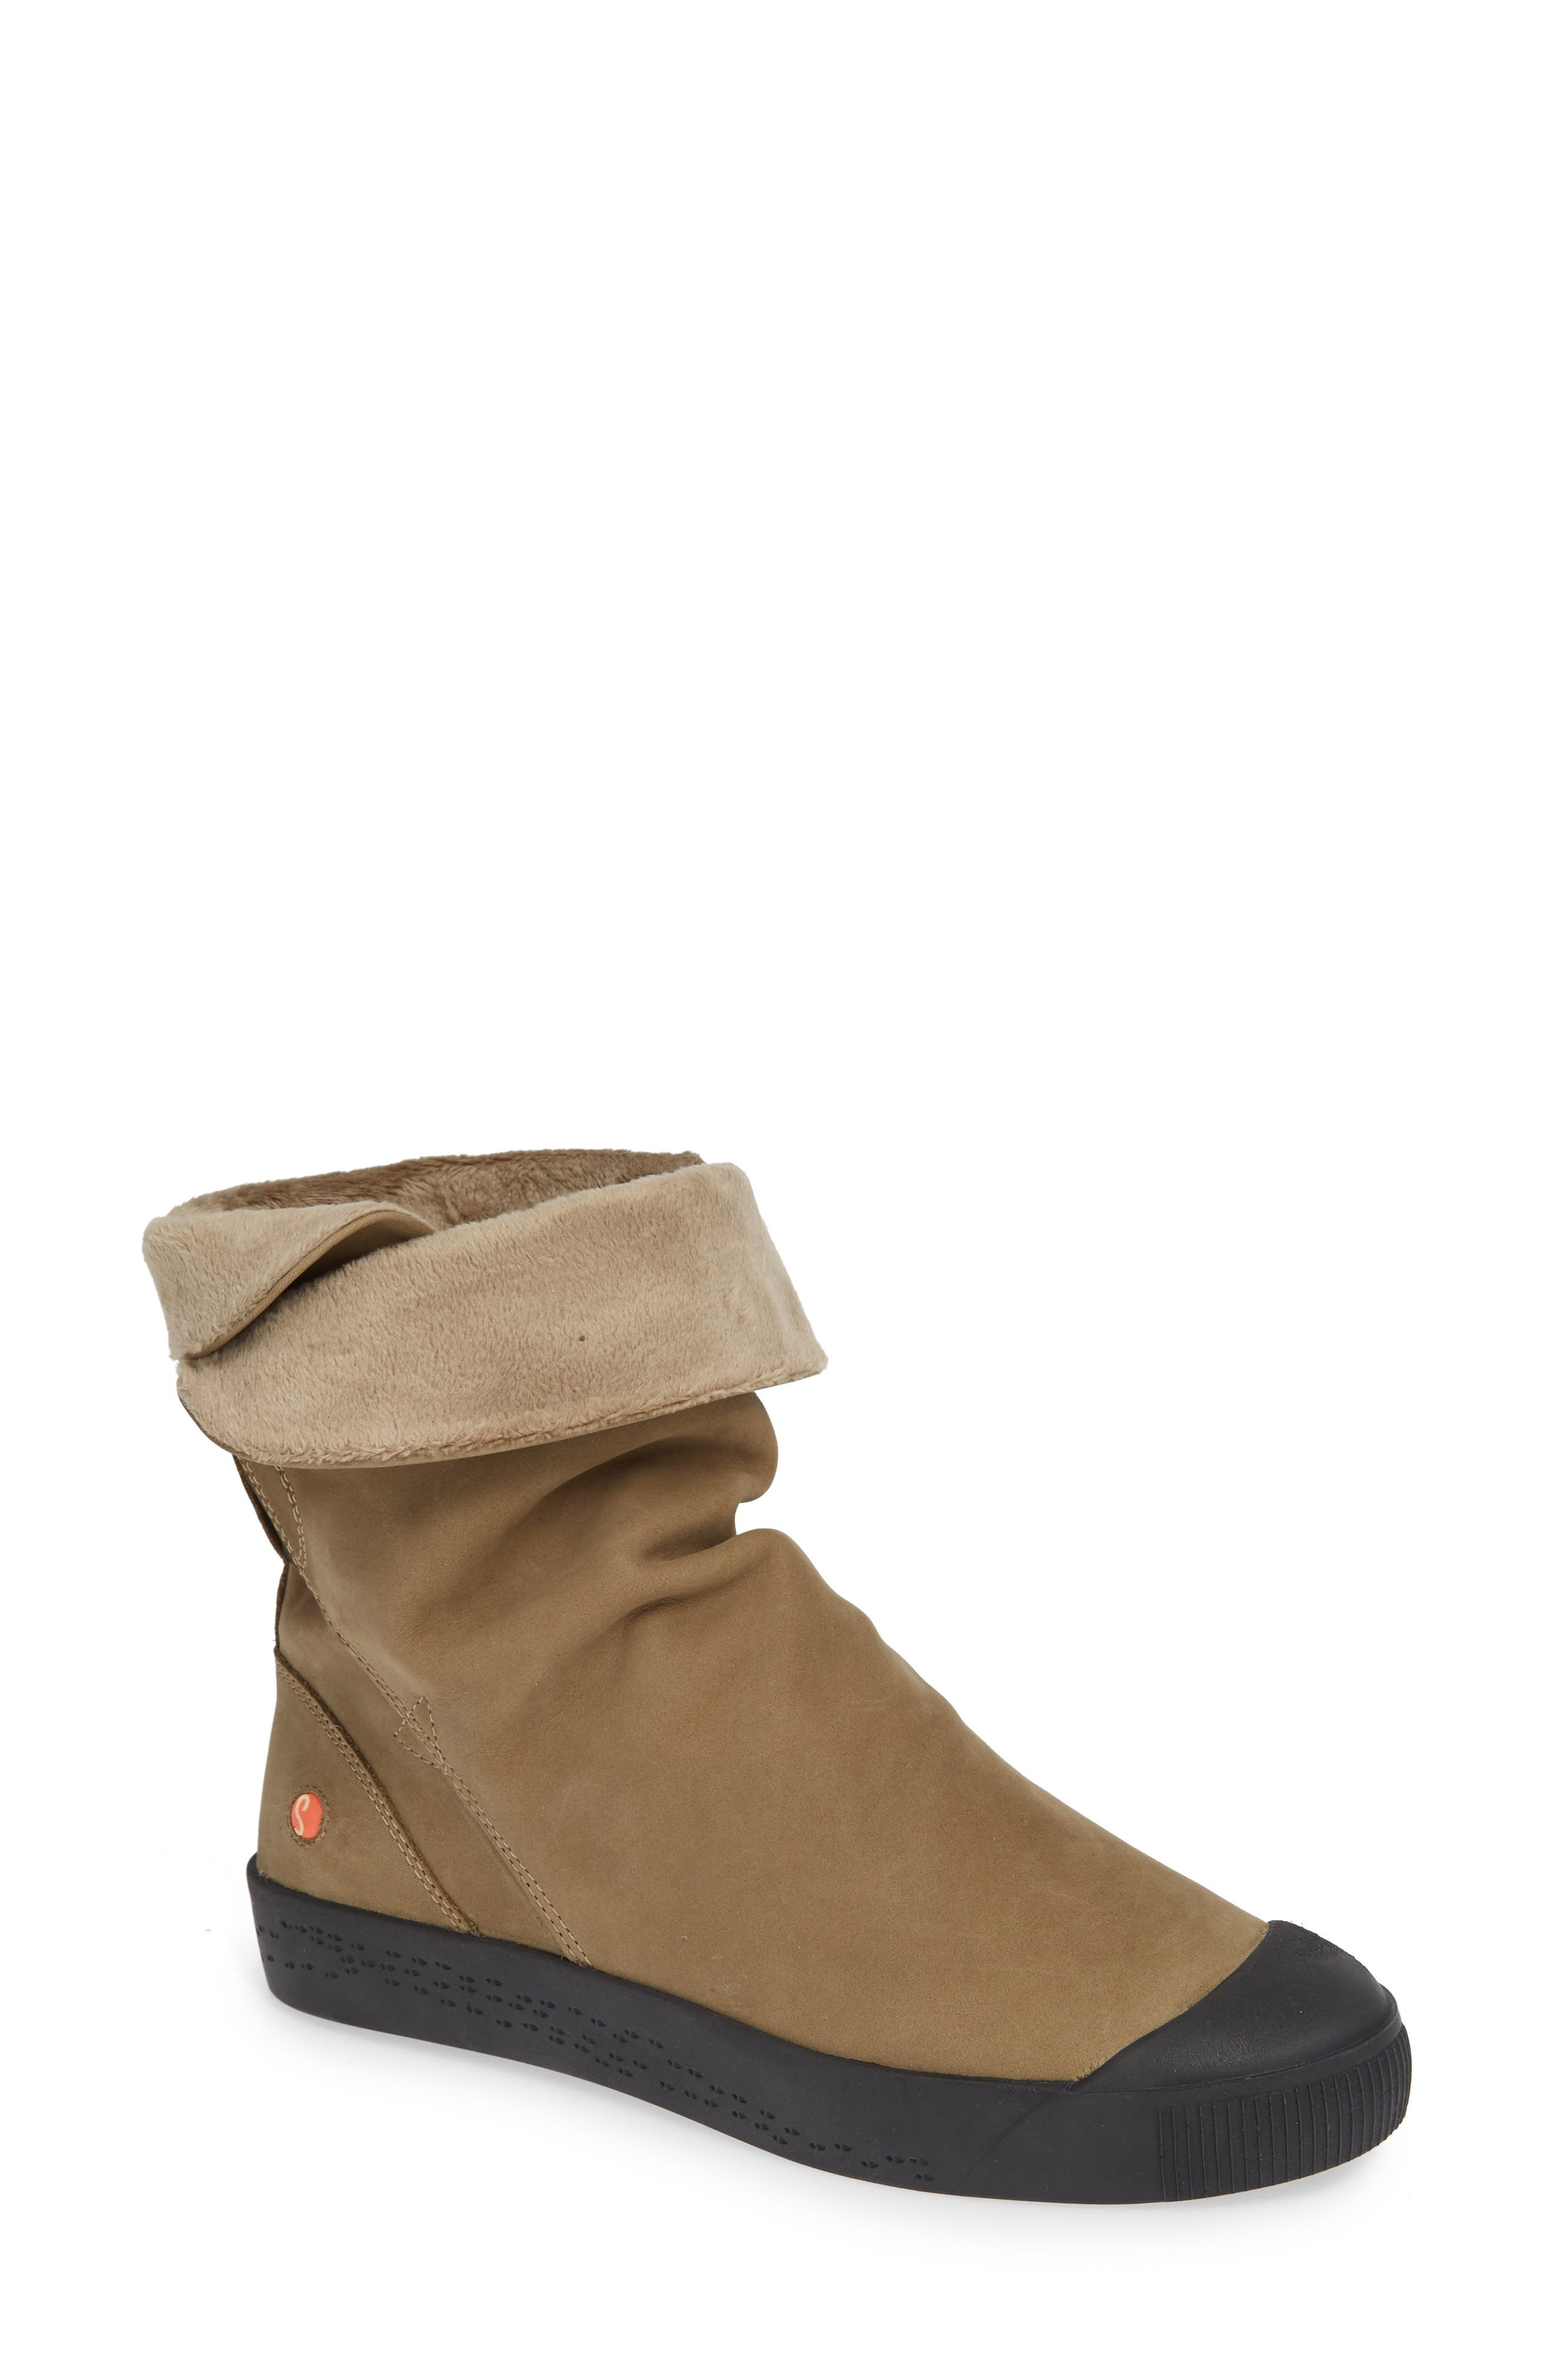 Softinos By Fly London Kaz Slouchy Sneaker Boot - Brown